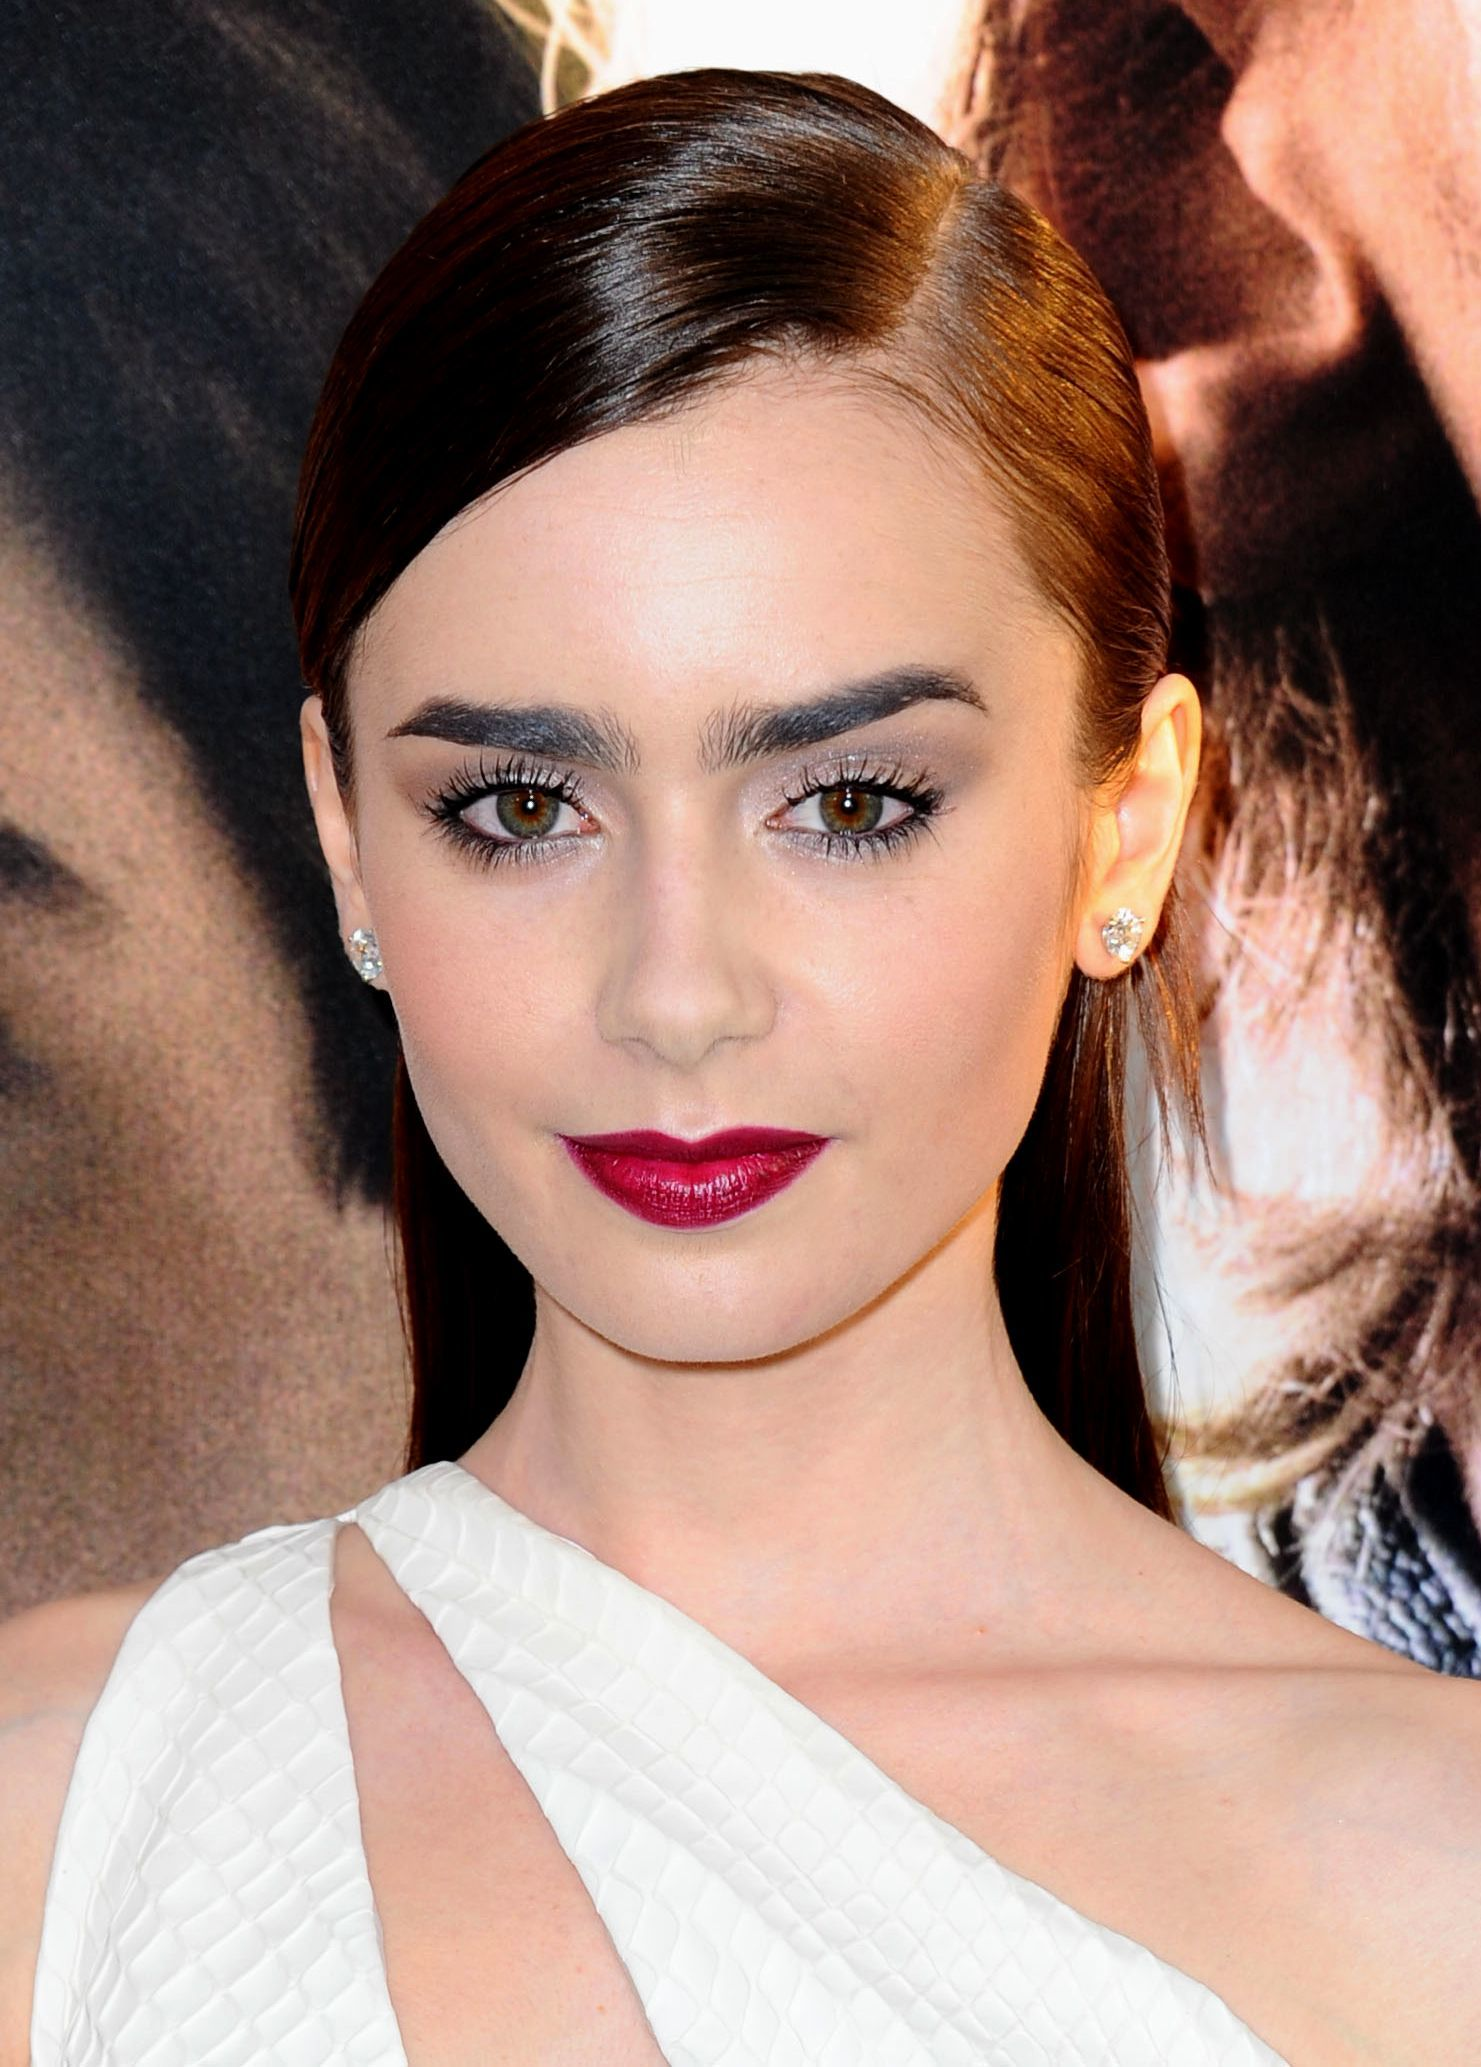 british american actress lily collins with her brunette long hair in a slick half up half down straight style